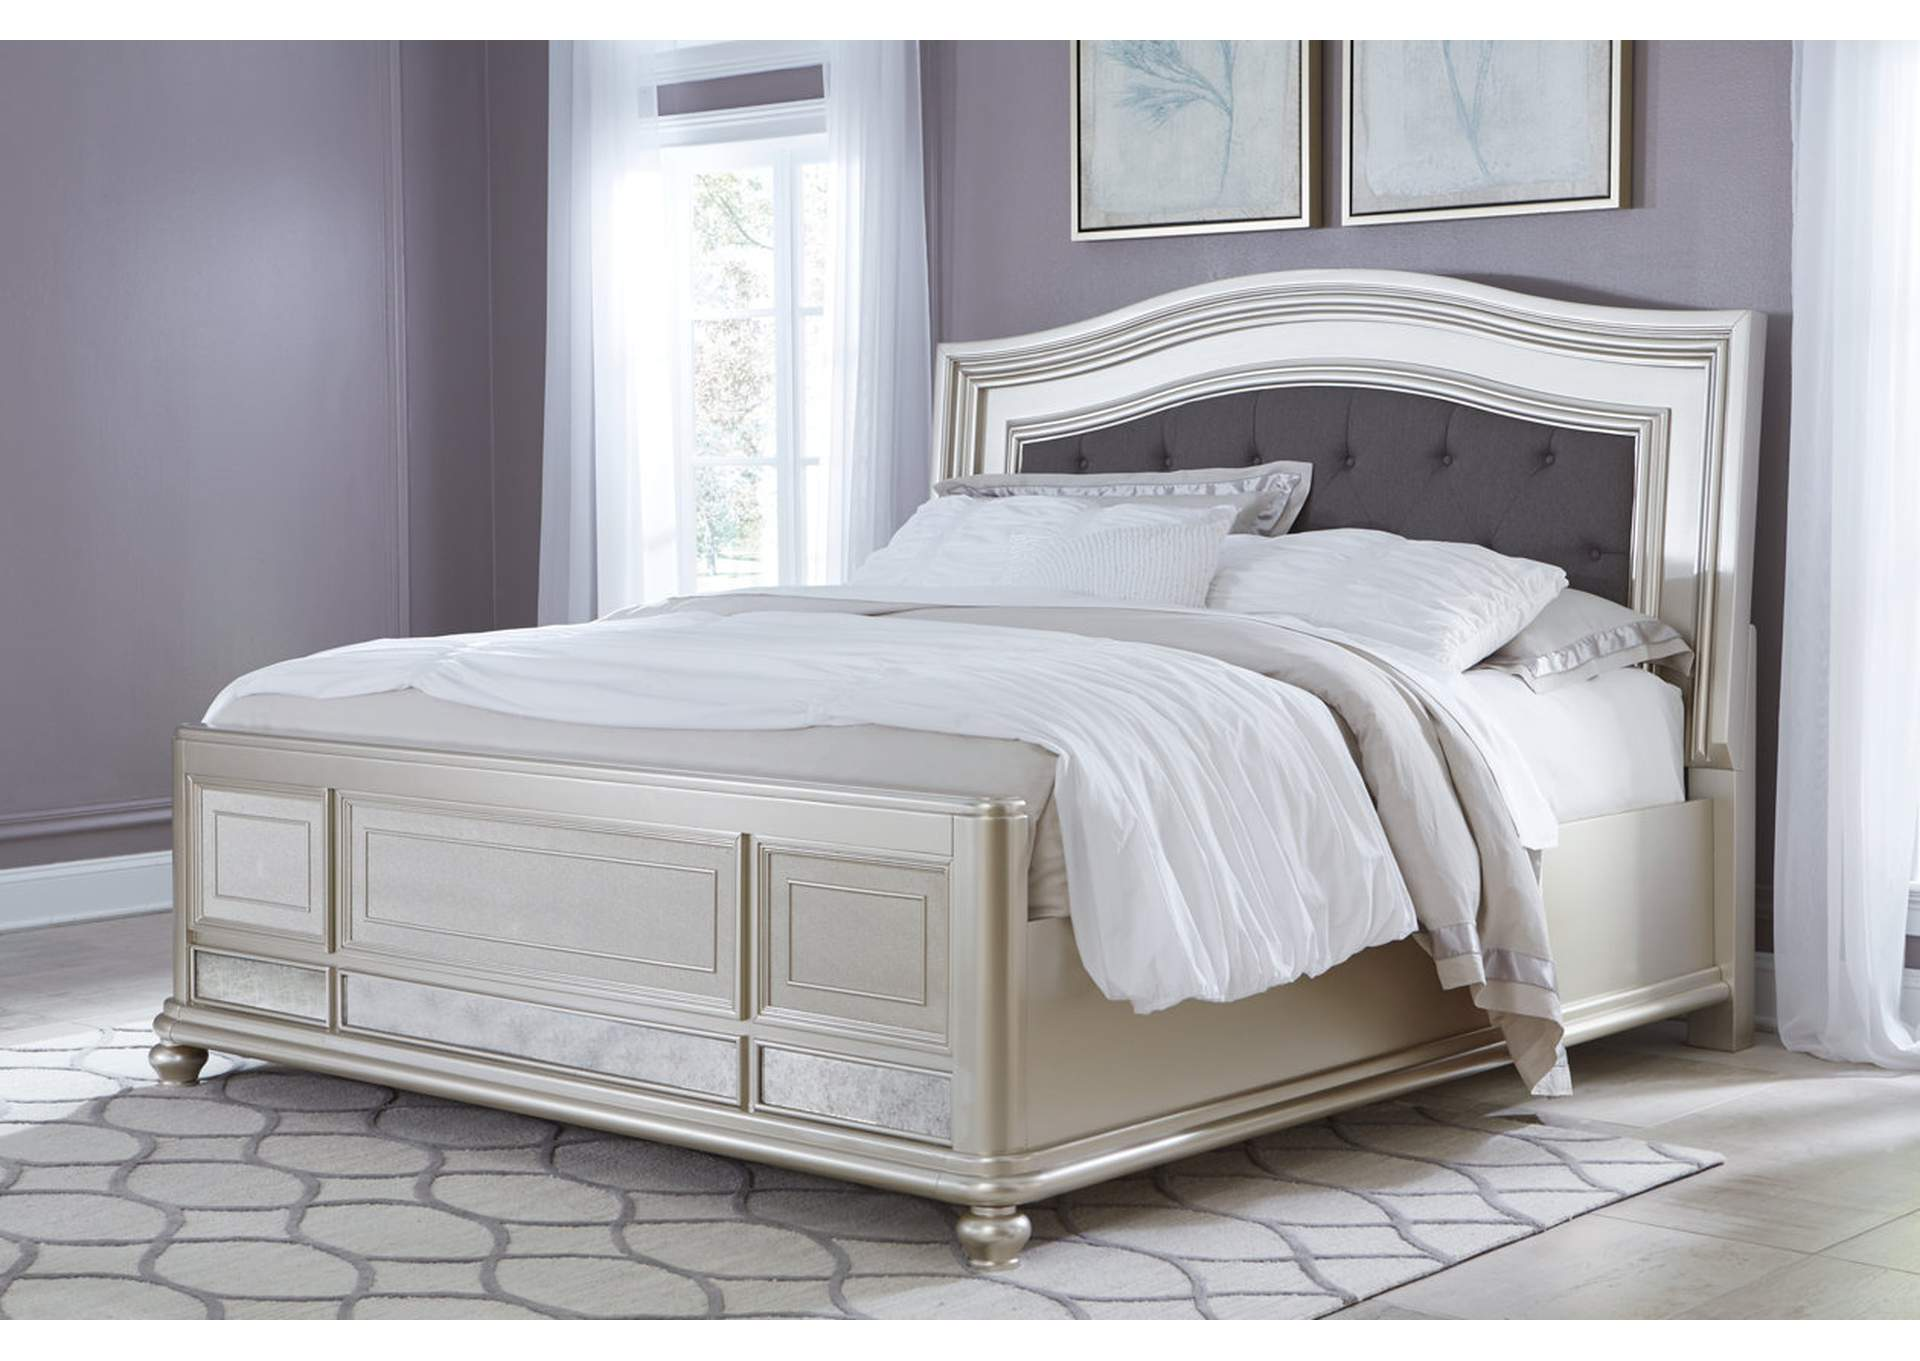 Coralayne Upholstered Queen Bed,Signature Design By Ashley